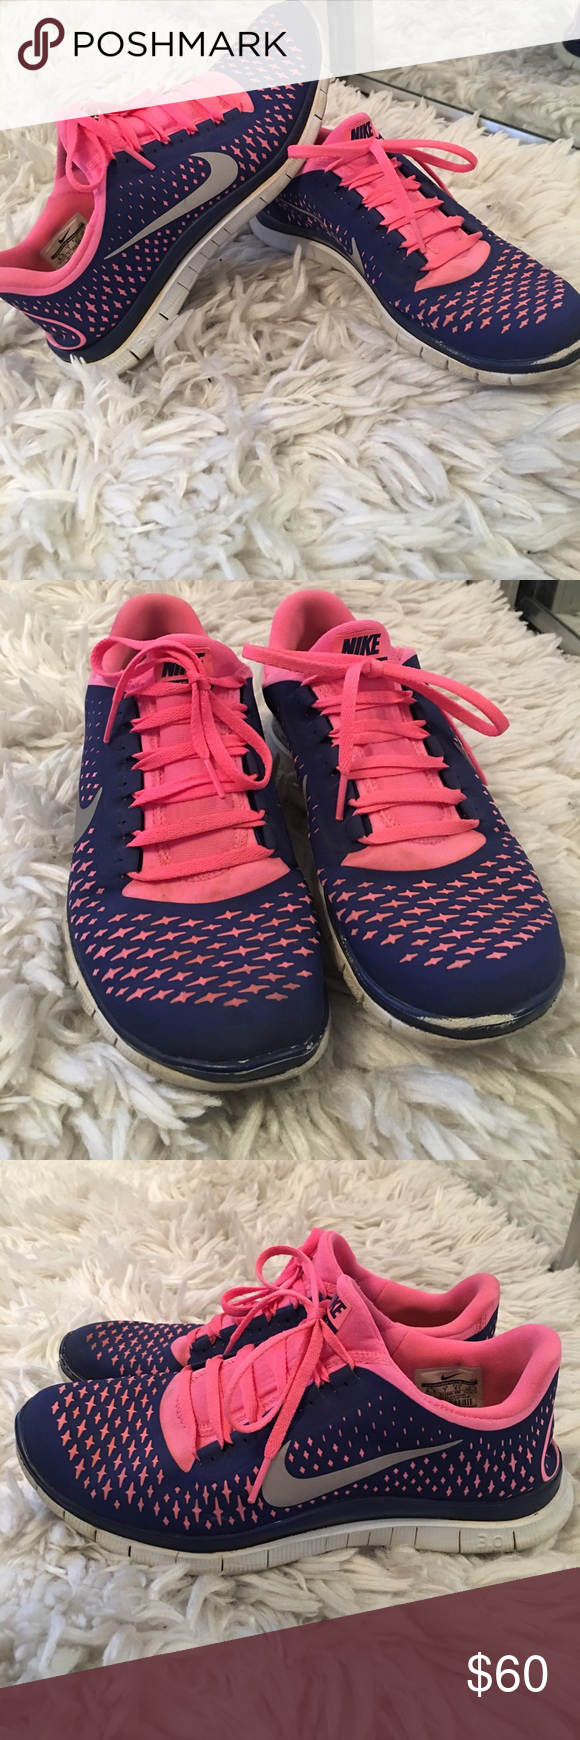 f938294a889c Nike Free Run 3.0 Pink purple silver and white! Have been worn down on the  front toe area as pictured but besides that in awesome condition!!